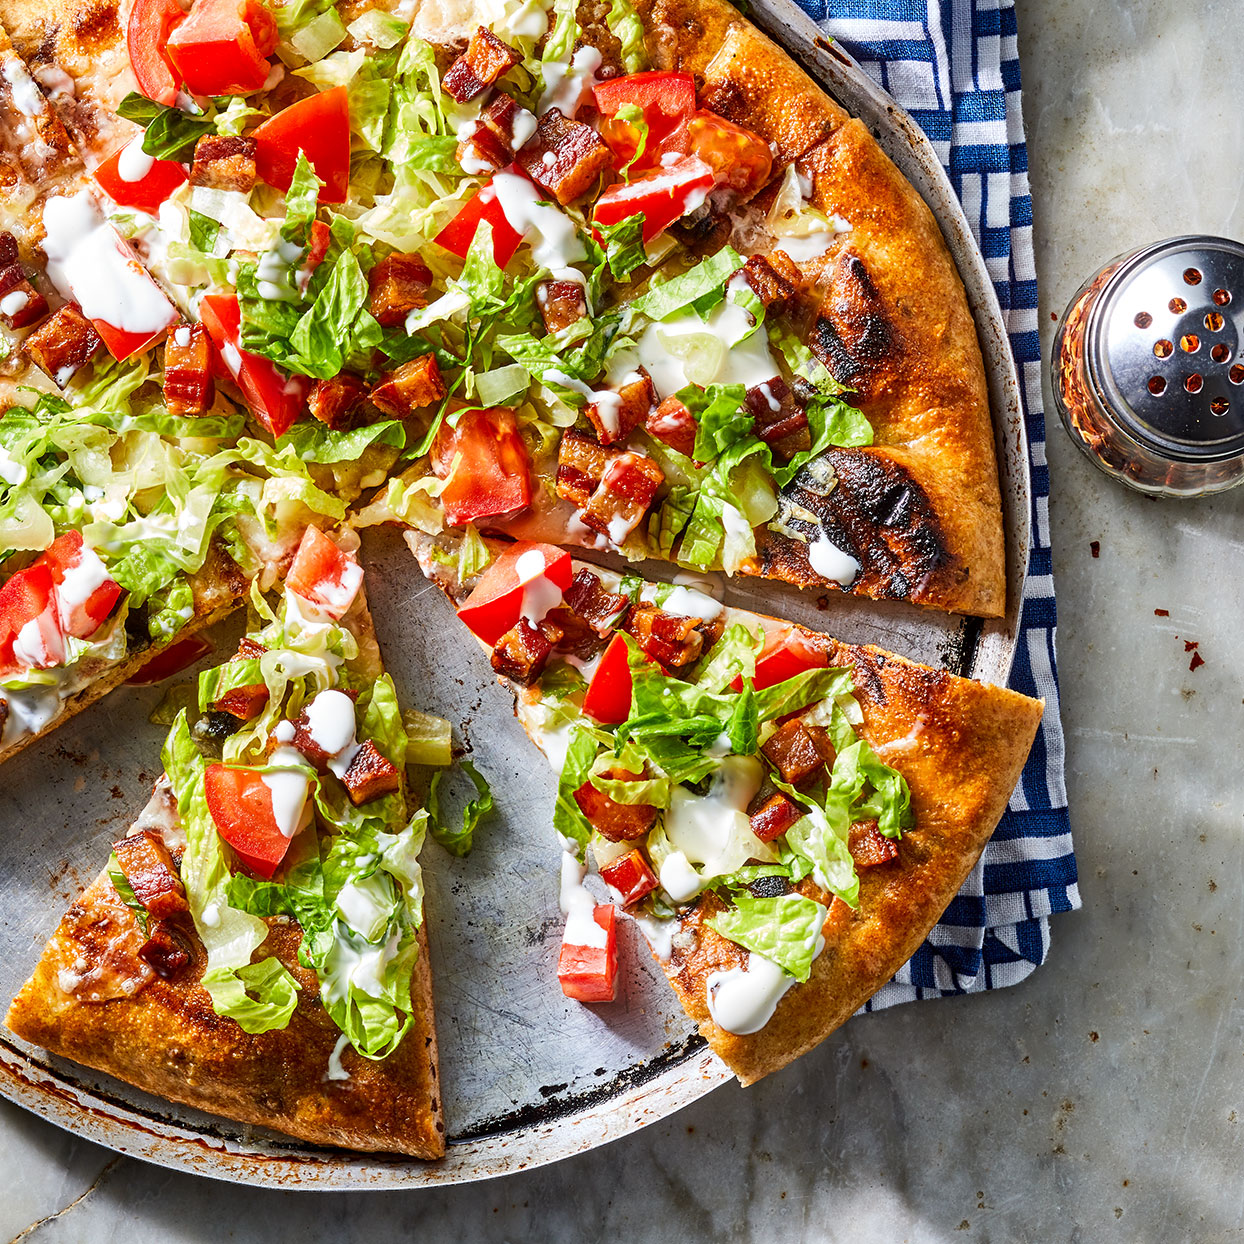 With pancetta, lettuce and tomato, this pie combines salad and pizza all in one, a pizz-alad if you will! It's a delicious mess--serve it with knives, forks and plenty of napkins. Source: EatingWell Magazine, June 2020